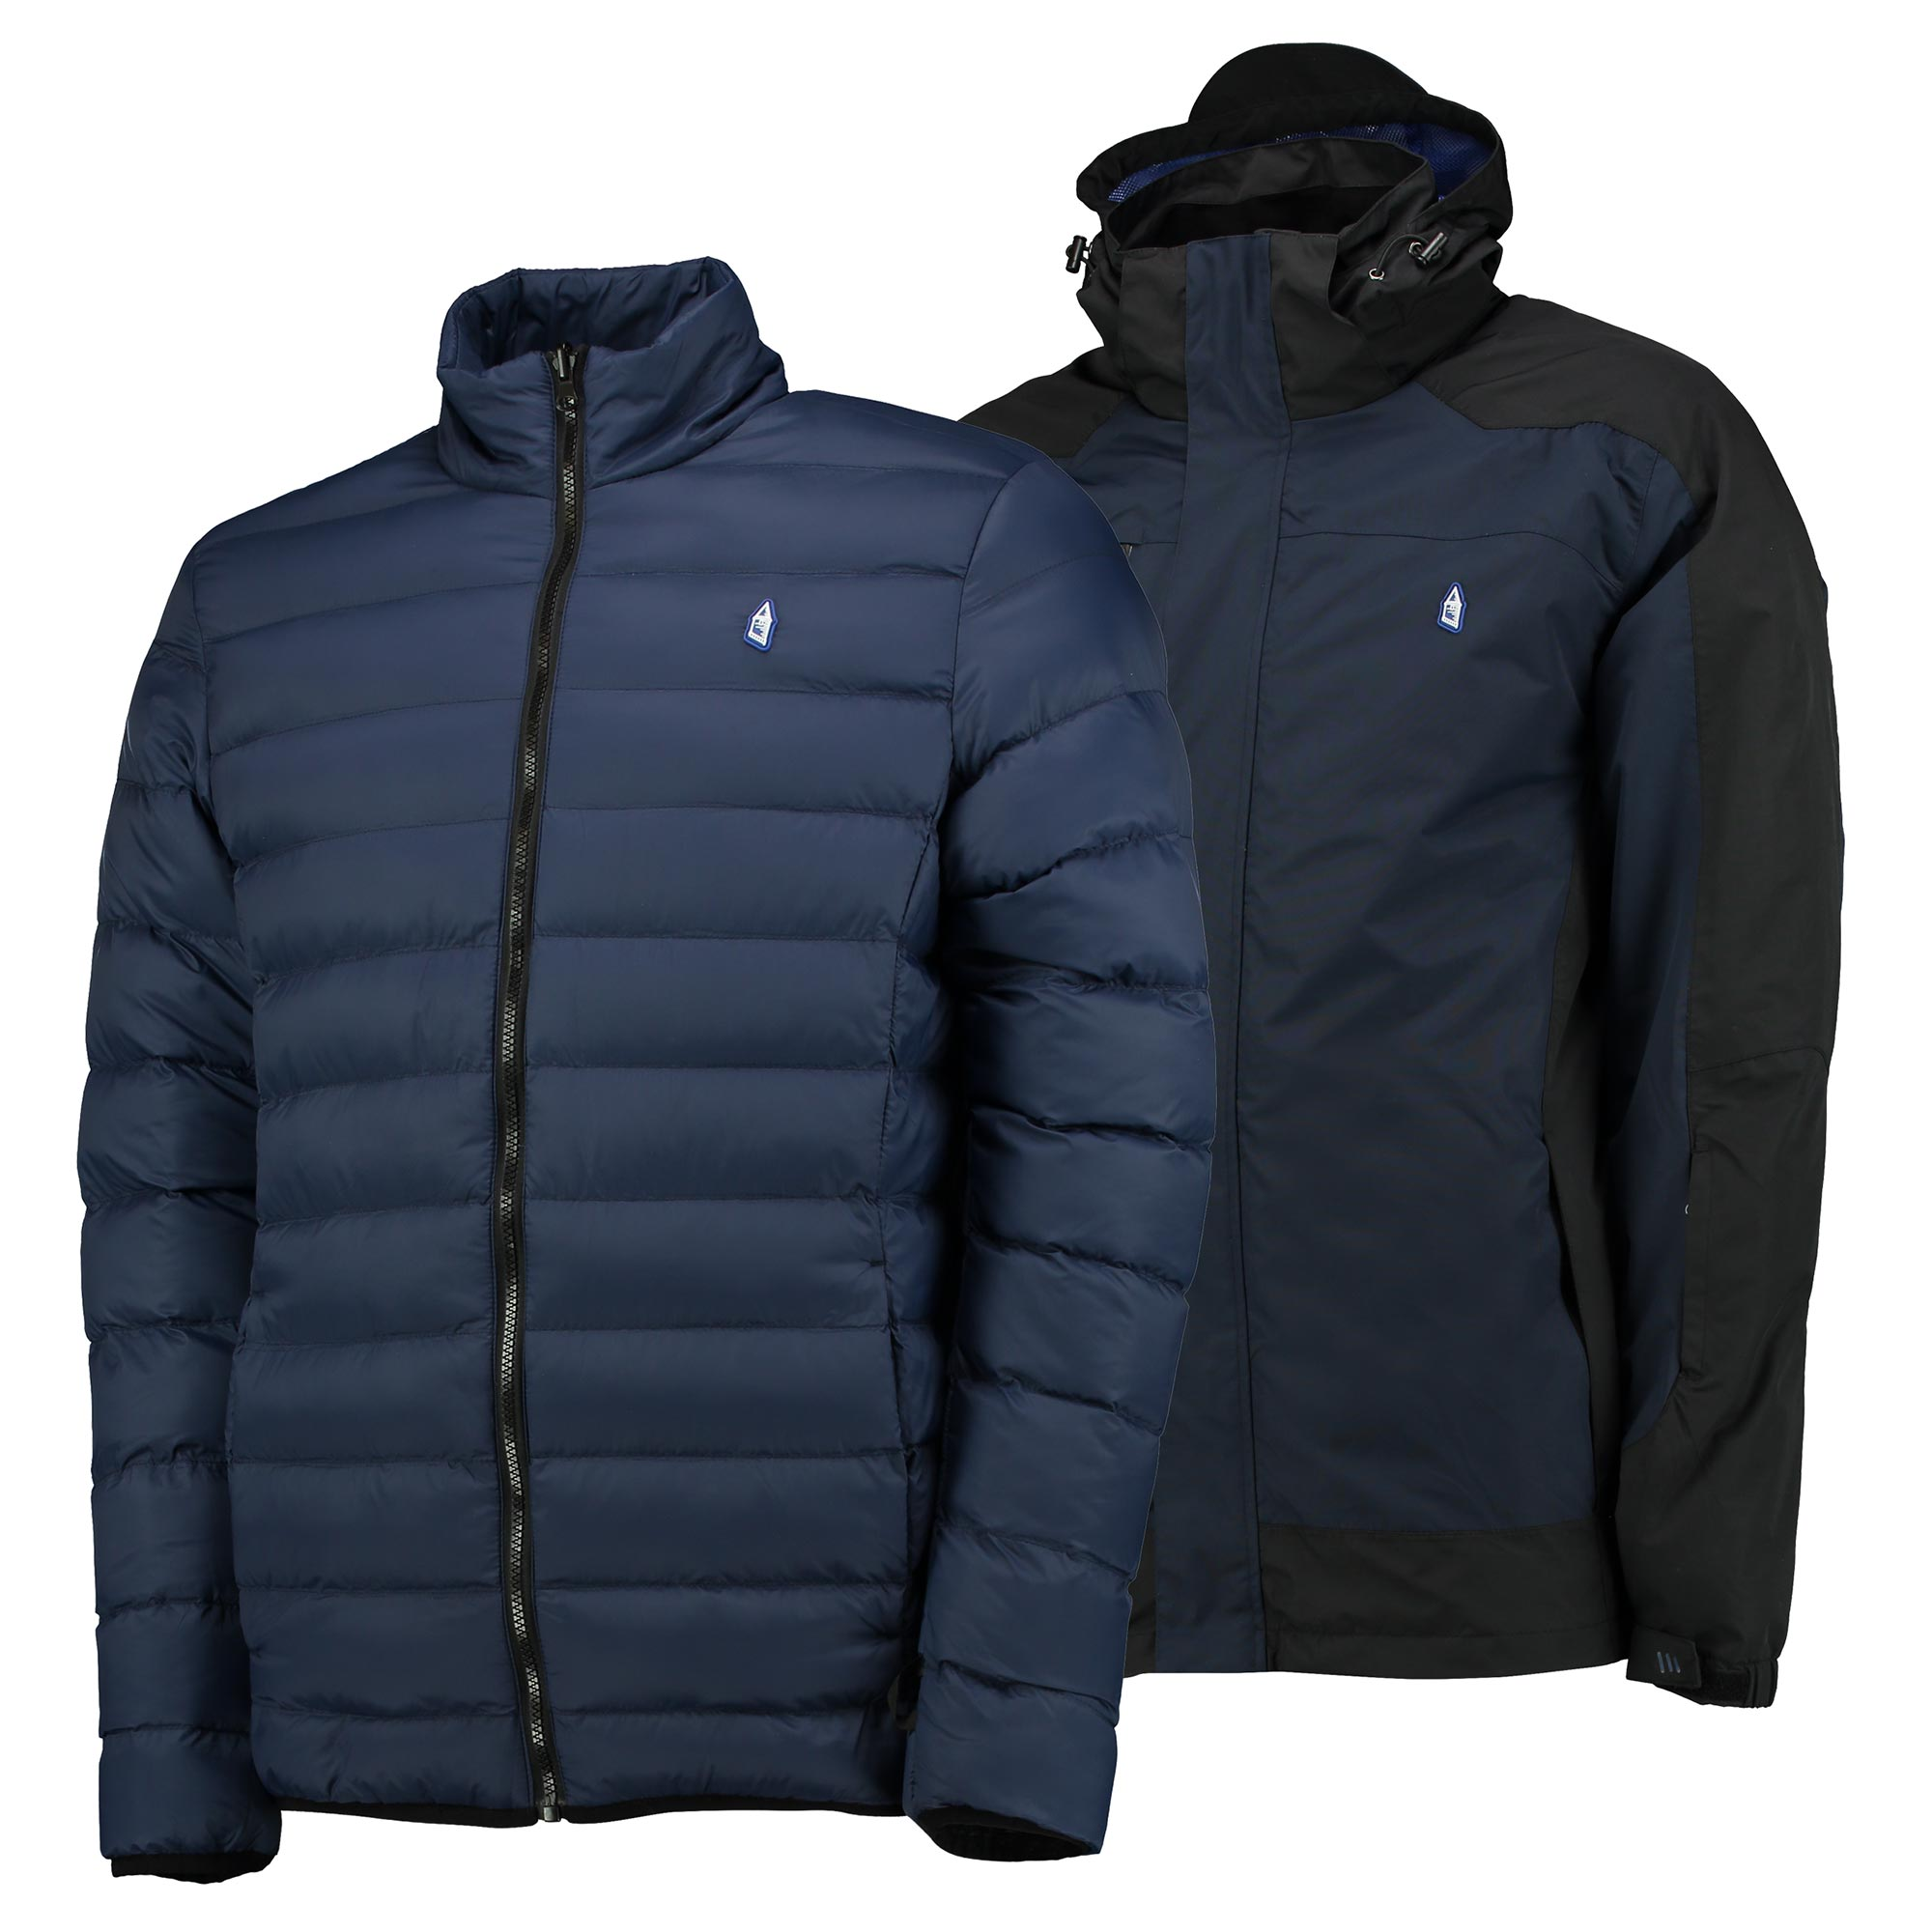 Everton Terrace 3in1 Jacket - Navy/Charcoal